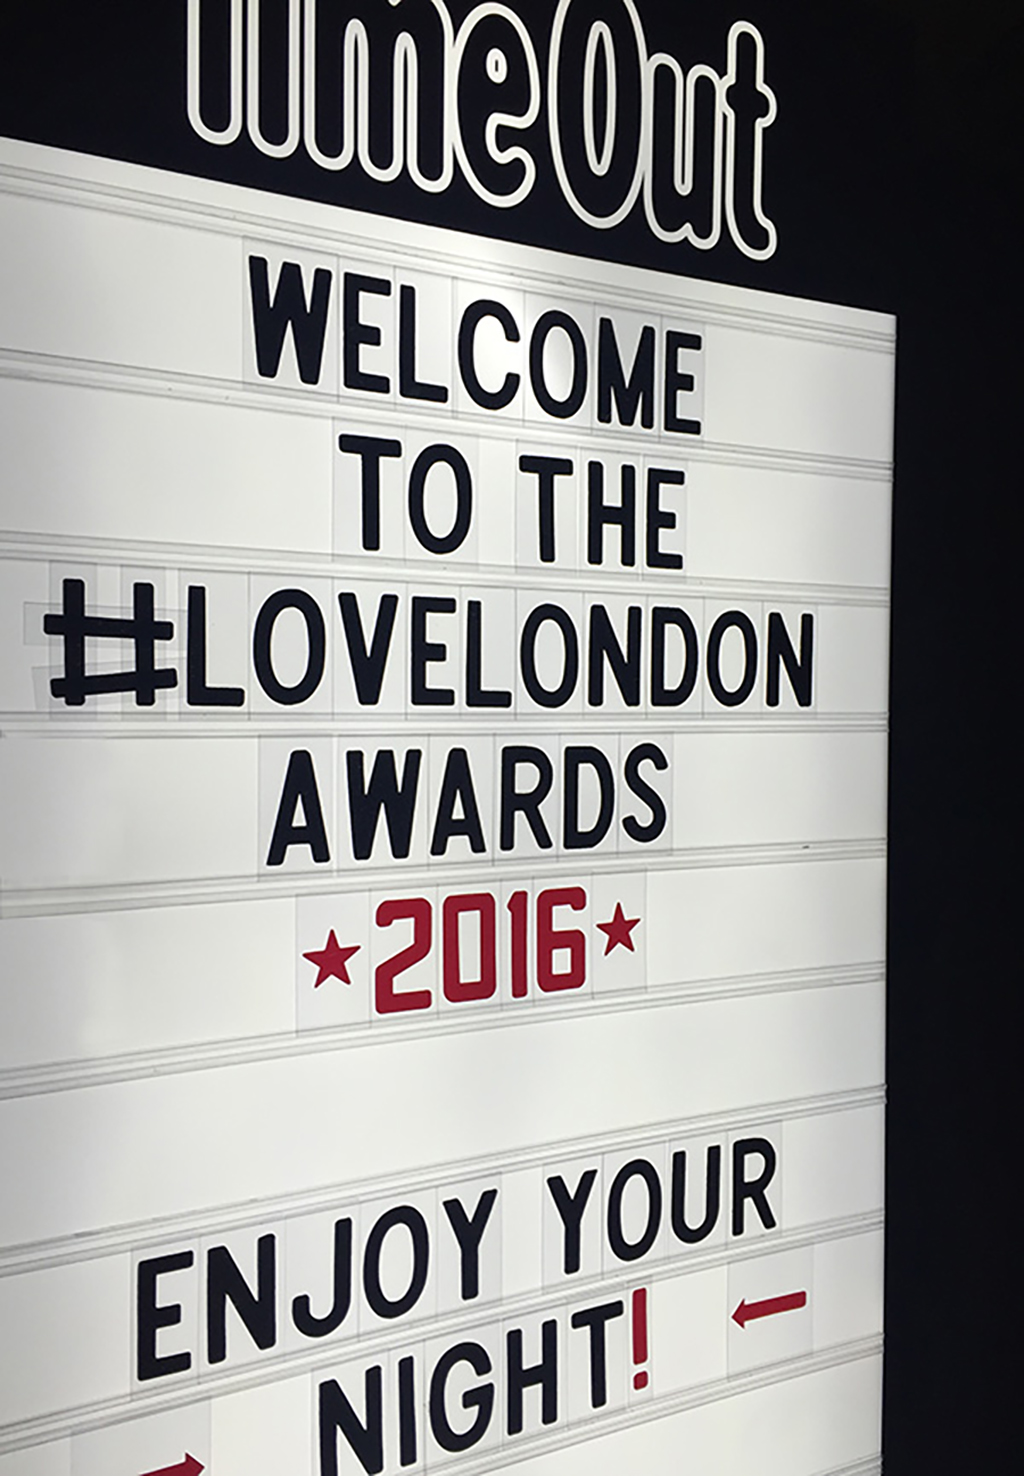 Time Out Love London Awards 2016 banner